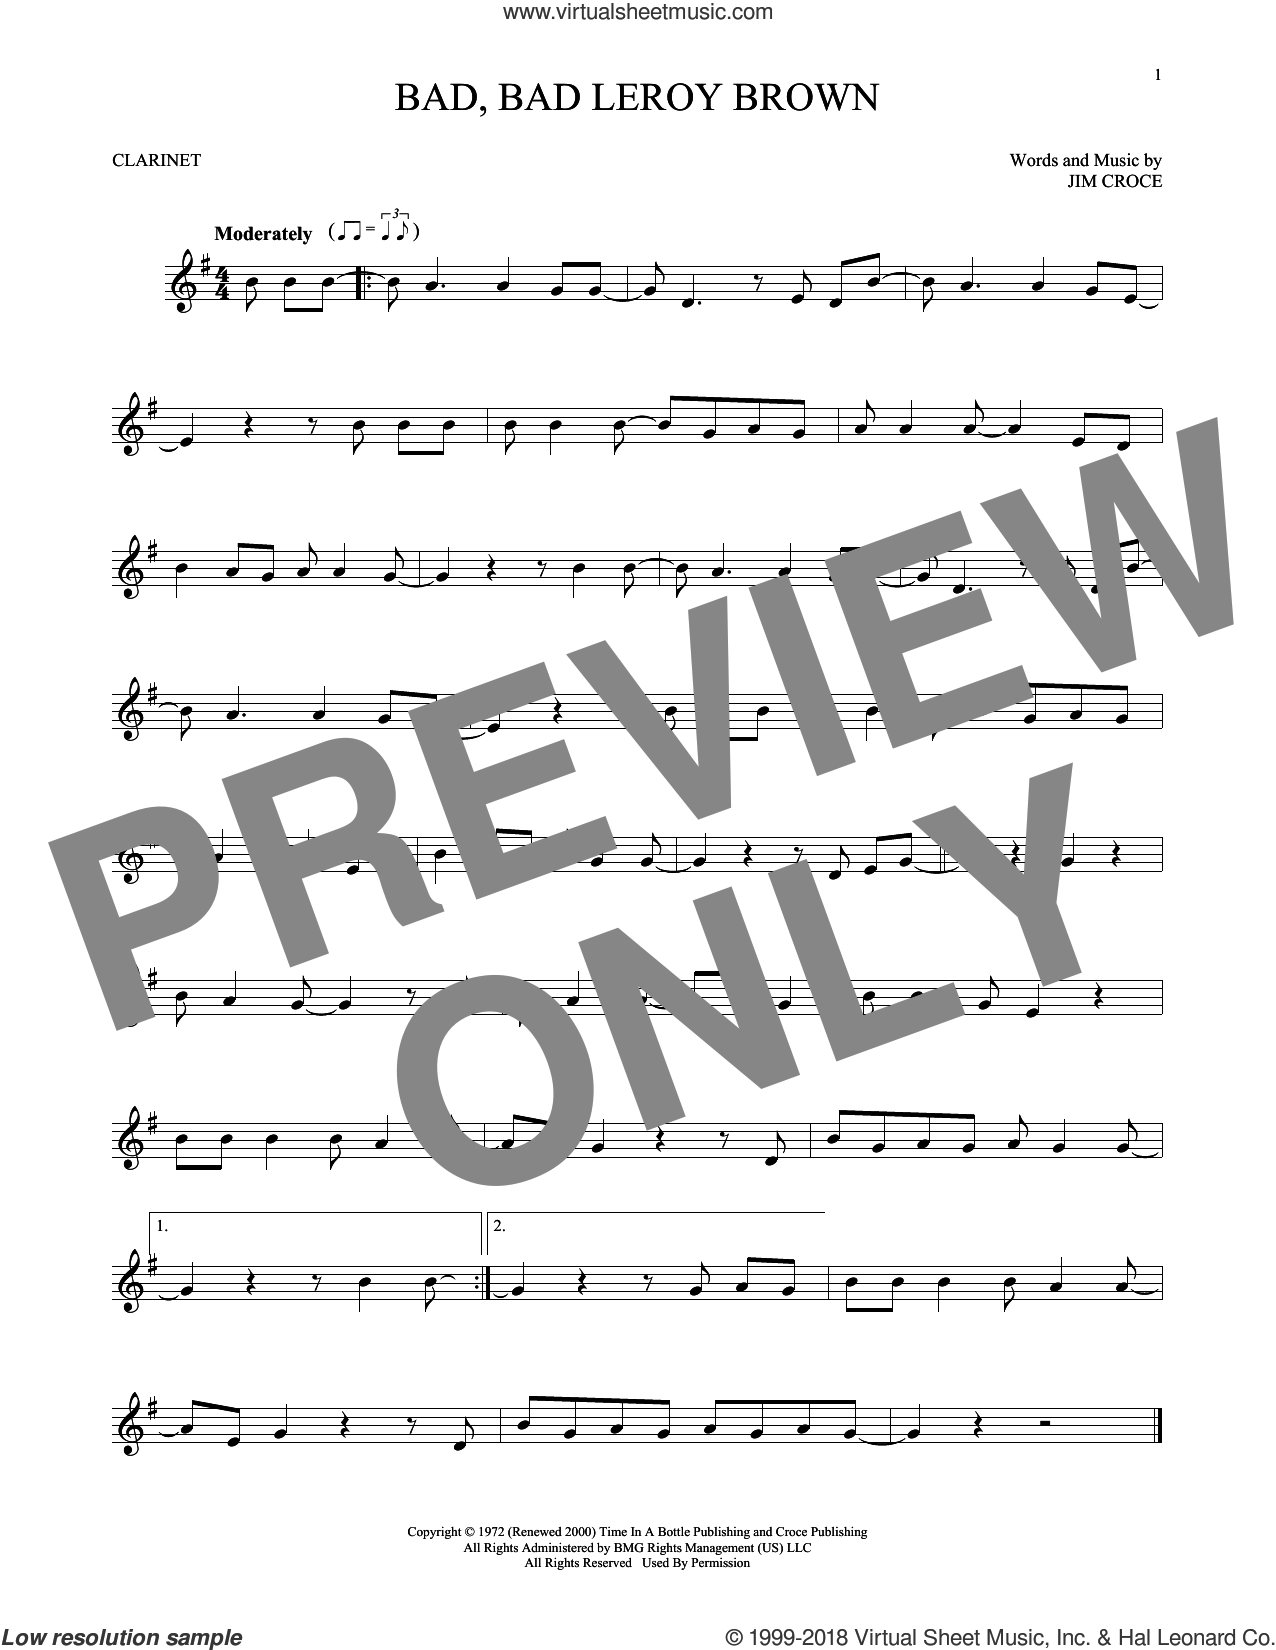 Bad, Bad Leroy Brown sheet music for clarinet solo by Jim Croce, intermediate skill level